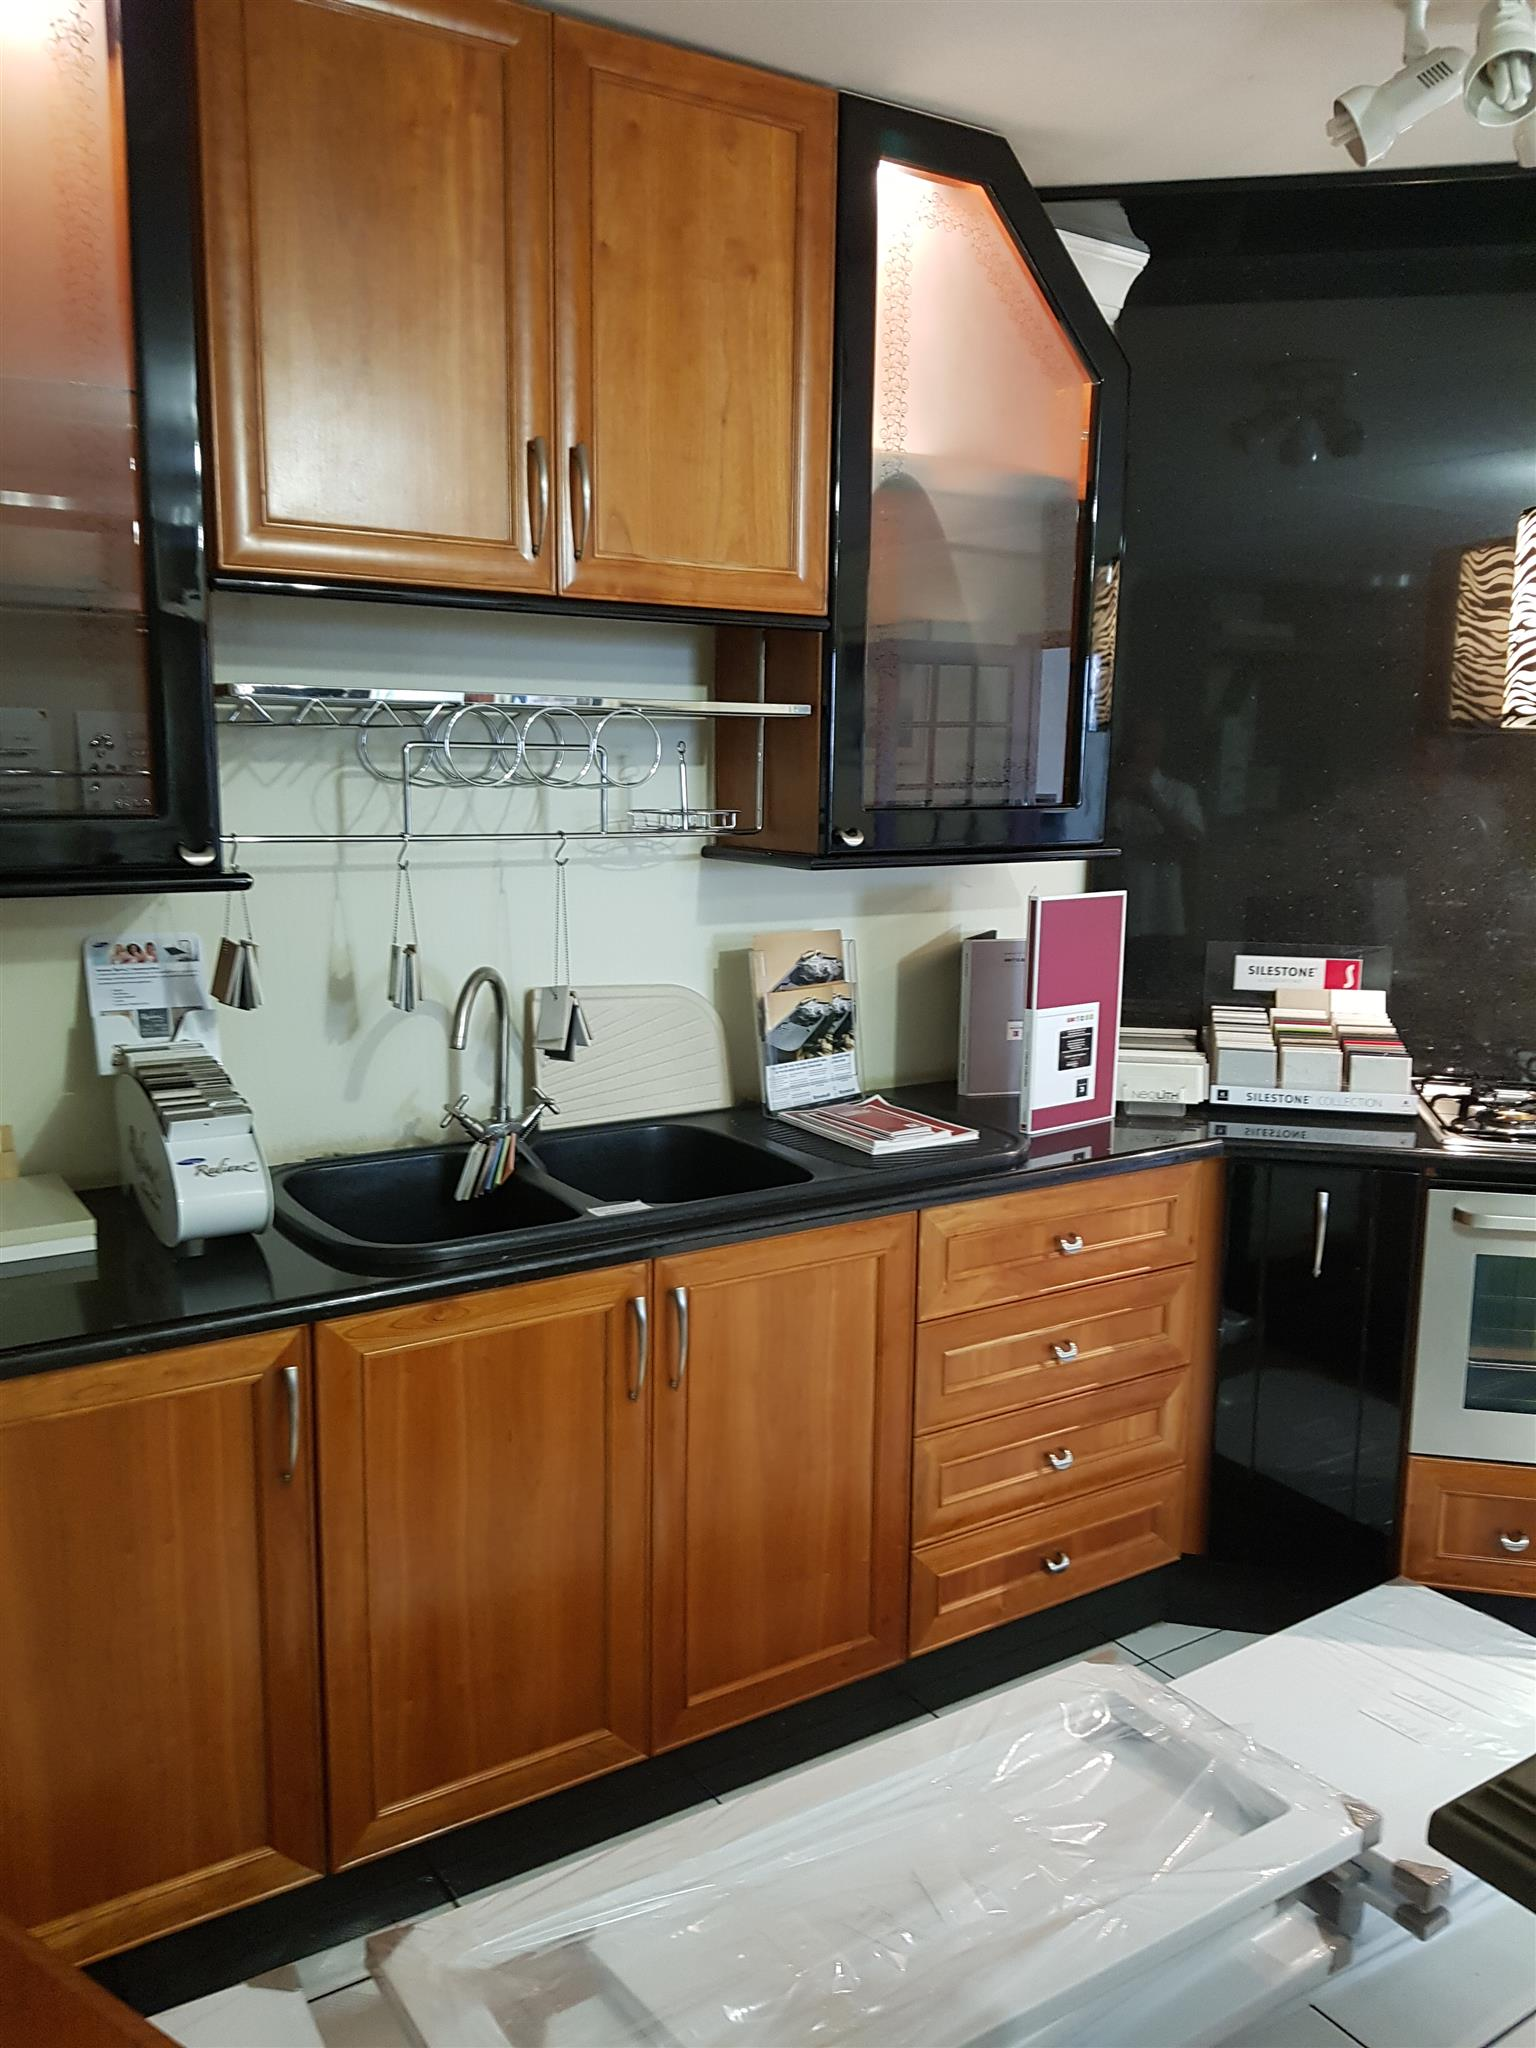 Secondhand Kitchen Immaculate showroom Kitchen was evaluated at R 150,000